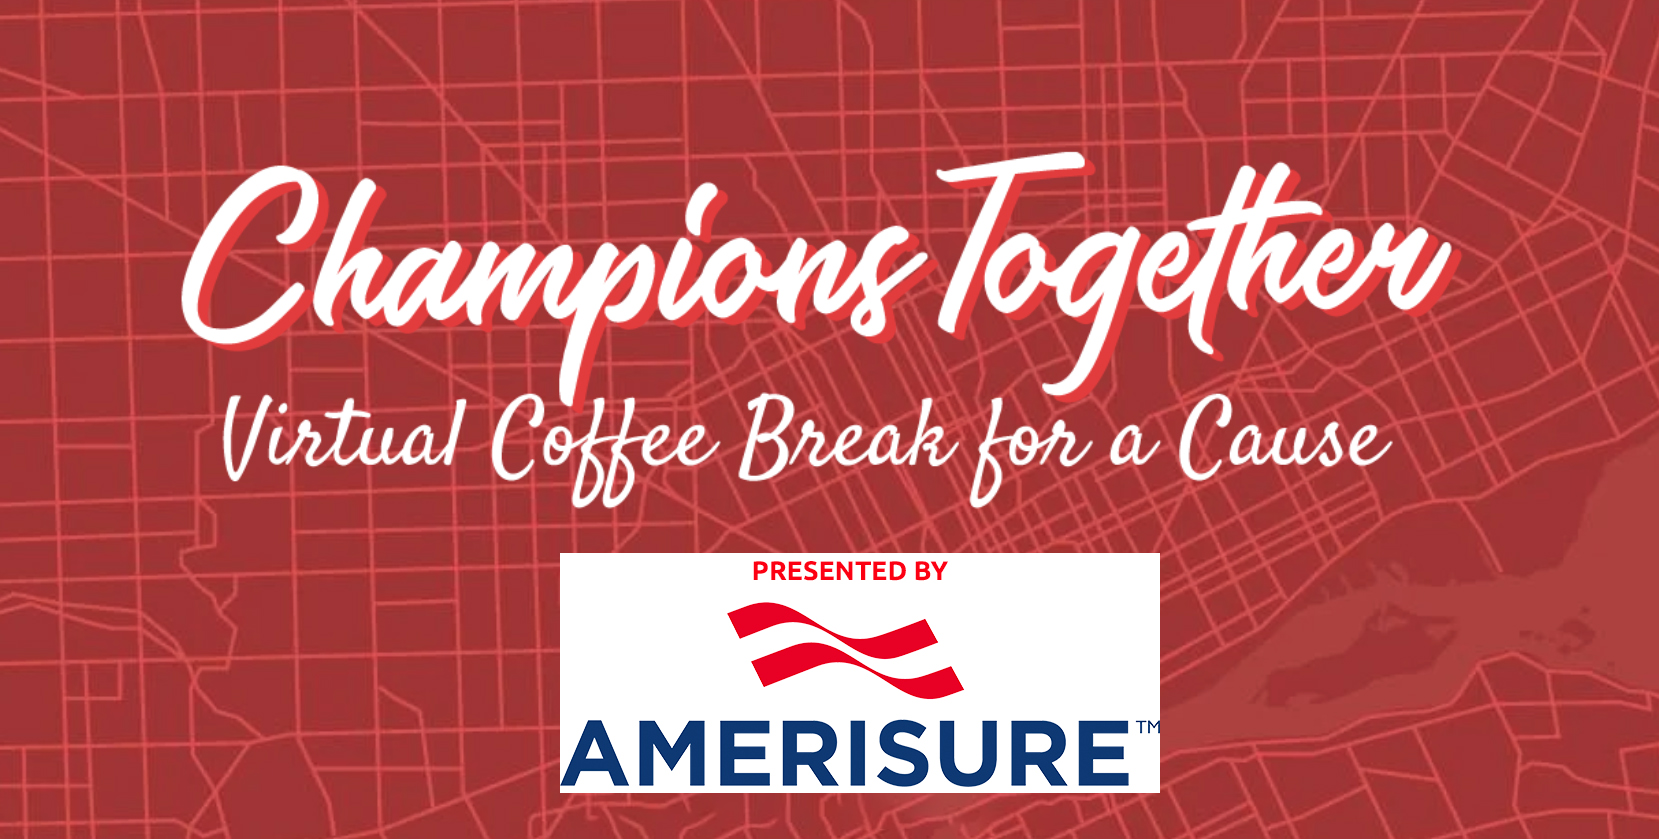 Champions Together presented by Amerisure